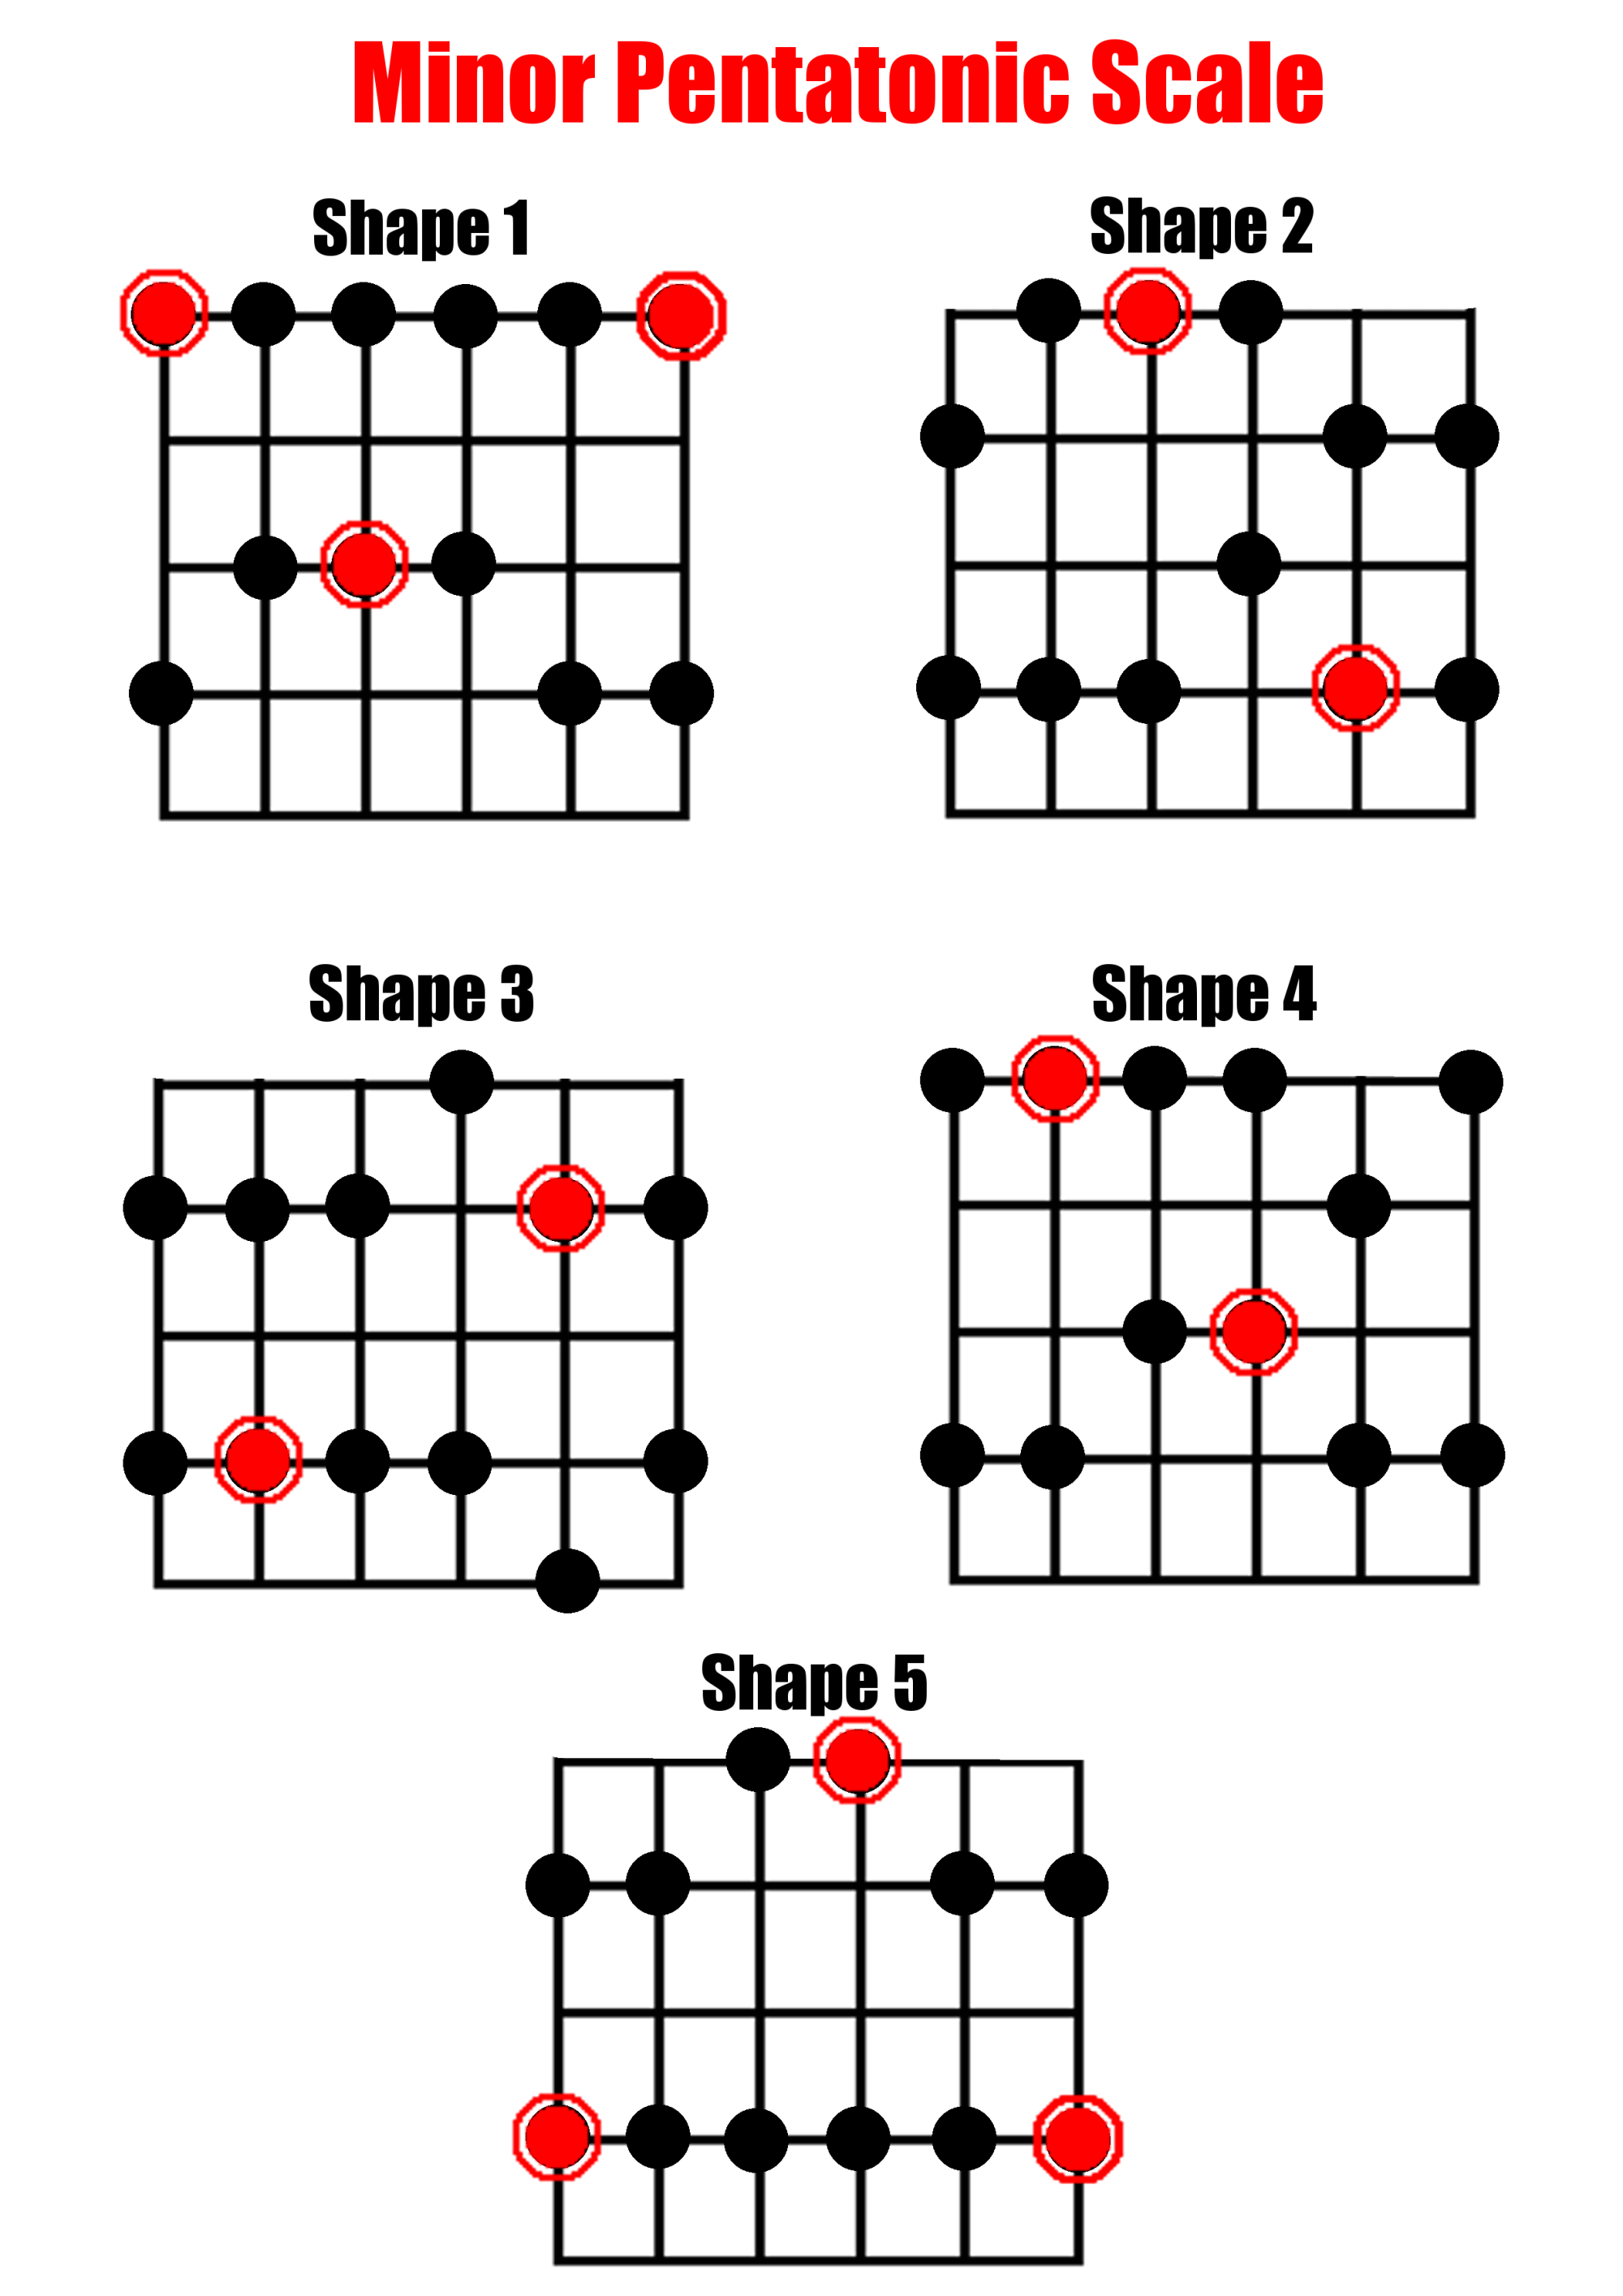 hight resolution of full scale diagrams for the minor pentatonic scale on guitar 5 shapes